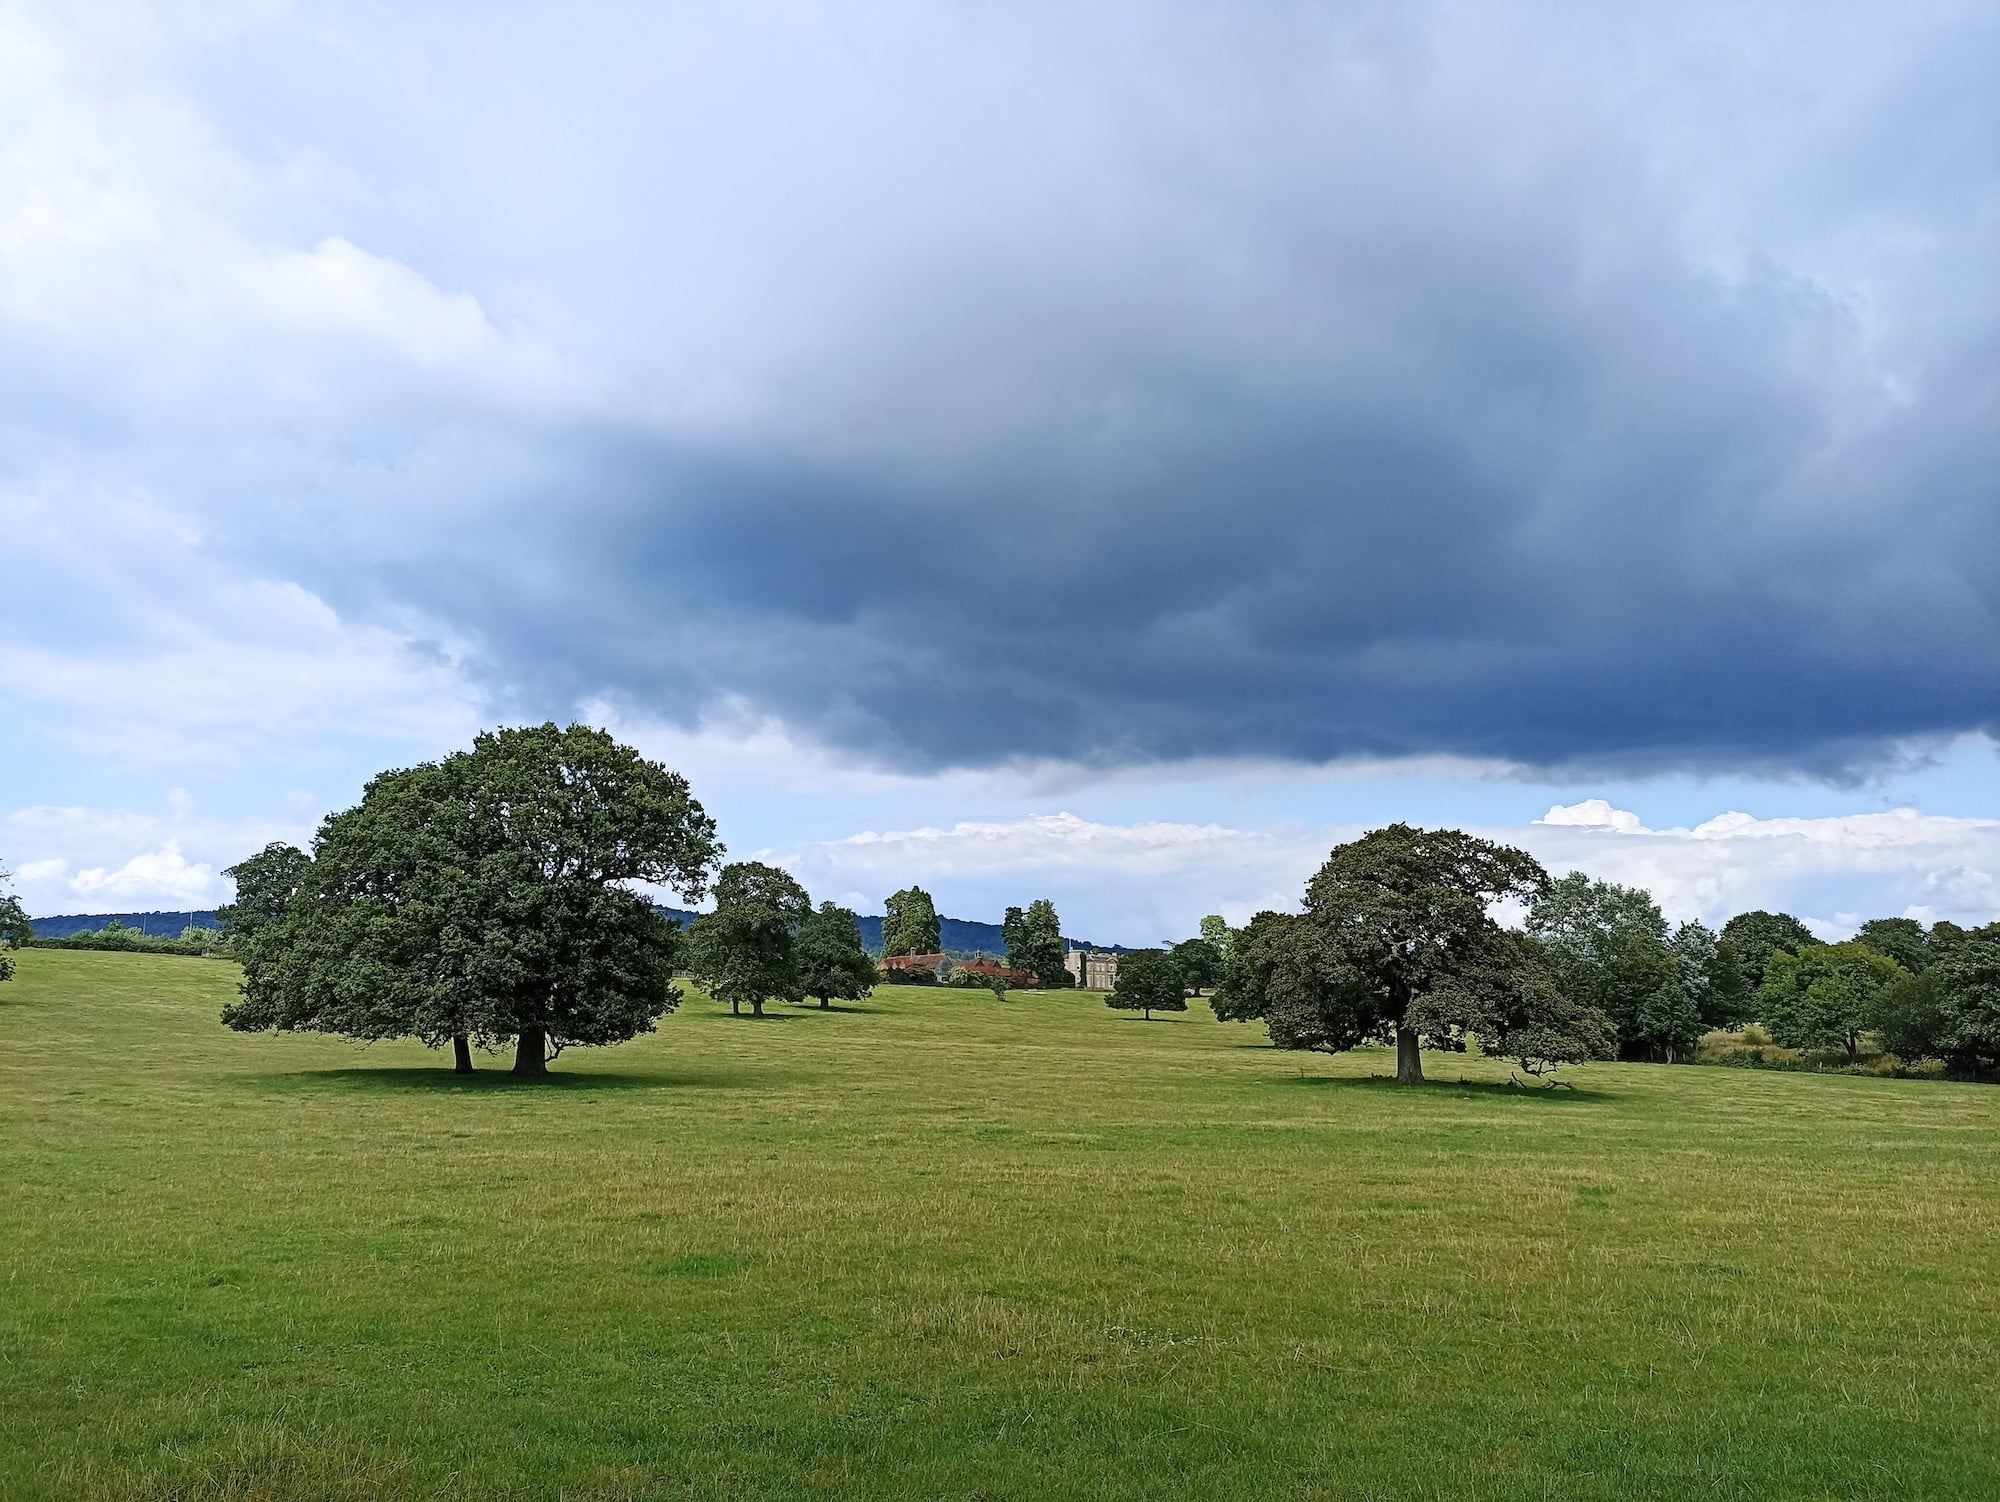 Clouds and tree photo taken with the Xiaomi Redmi Note 10S.